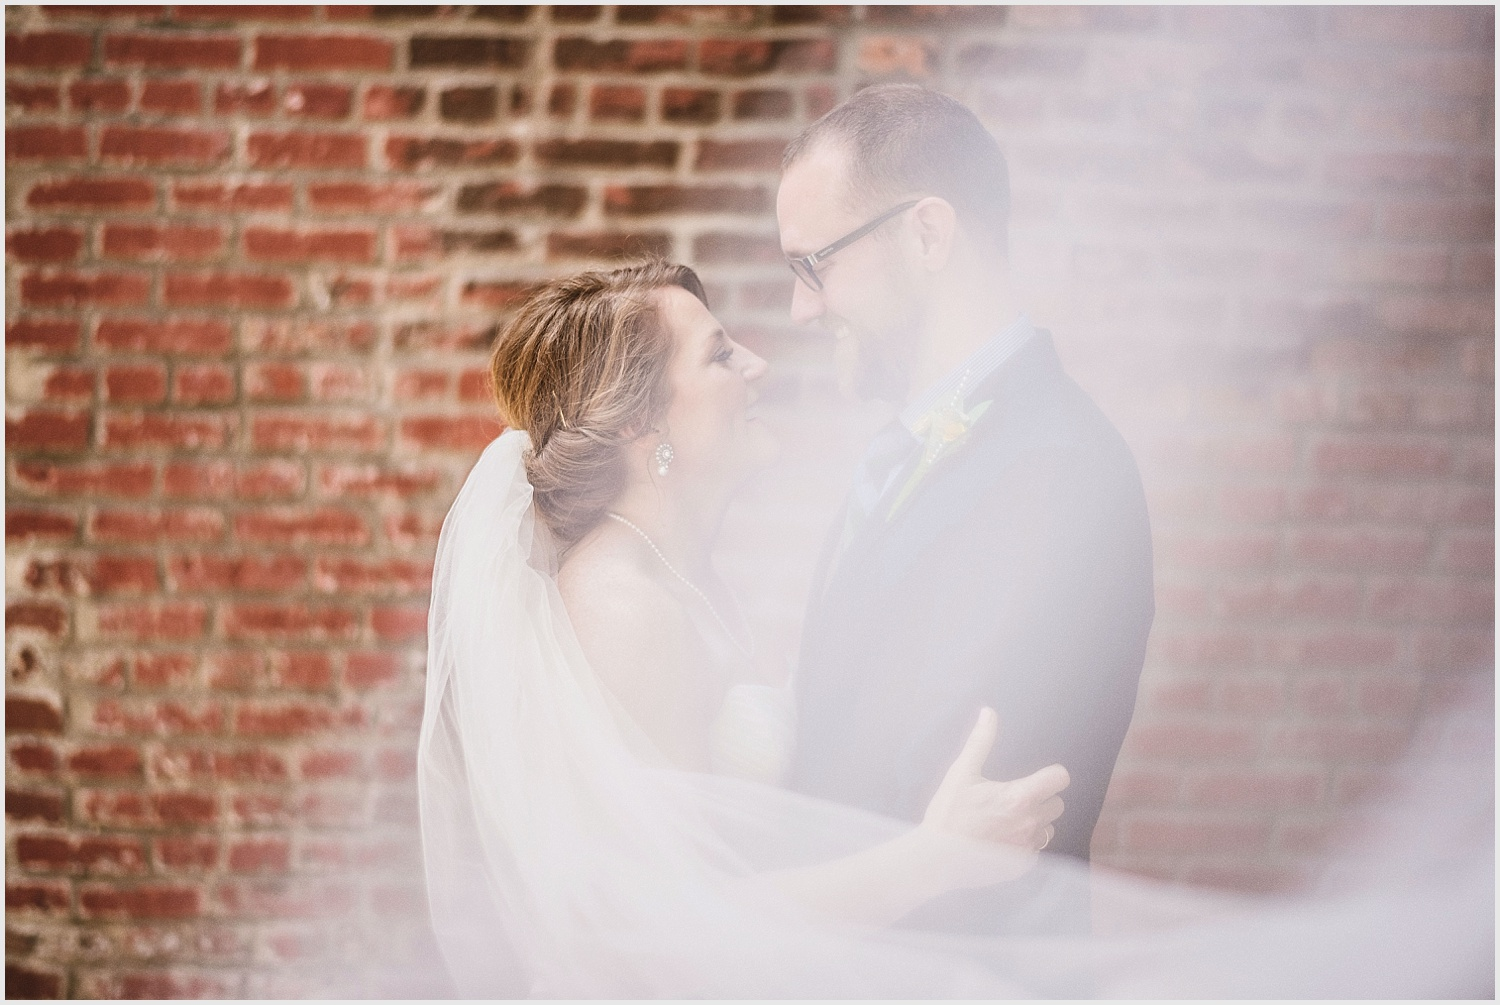 stpaul_wedding_lucas_botz_photography_020.jpg